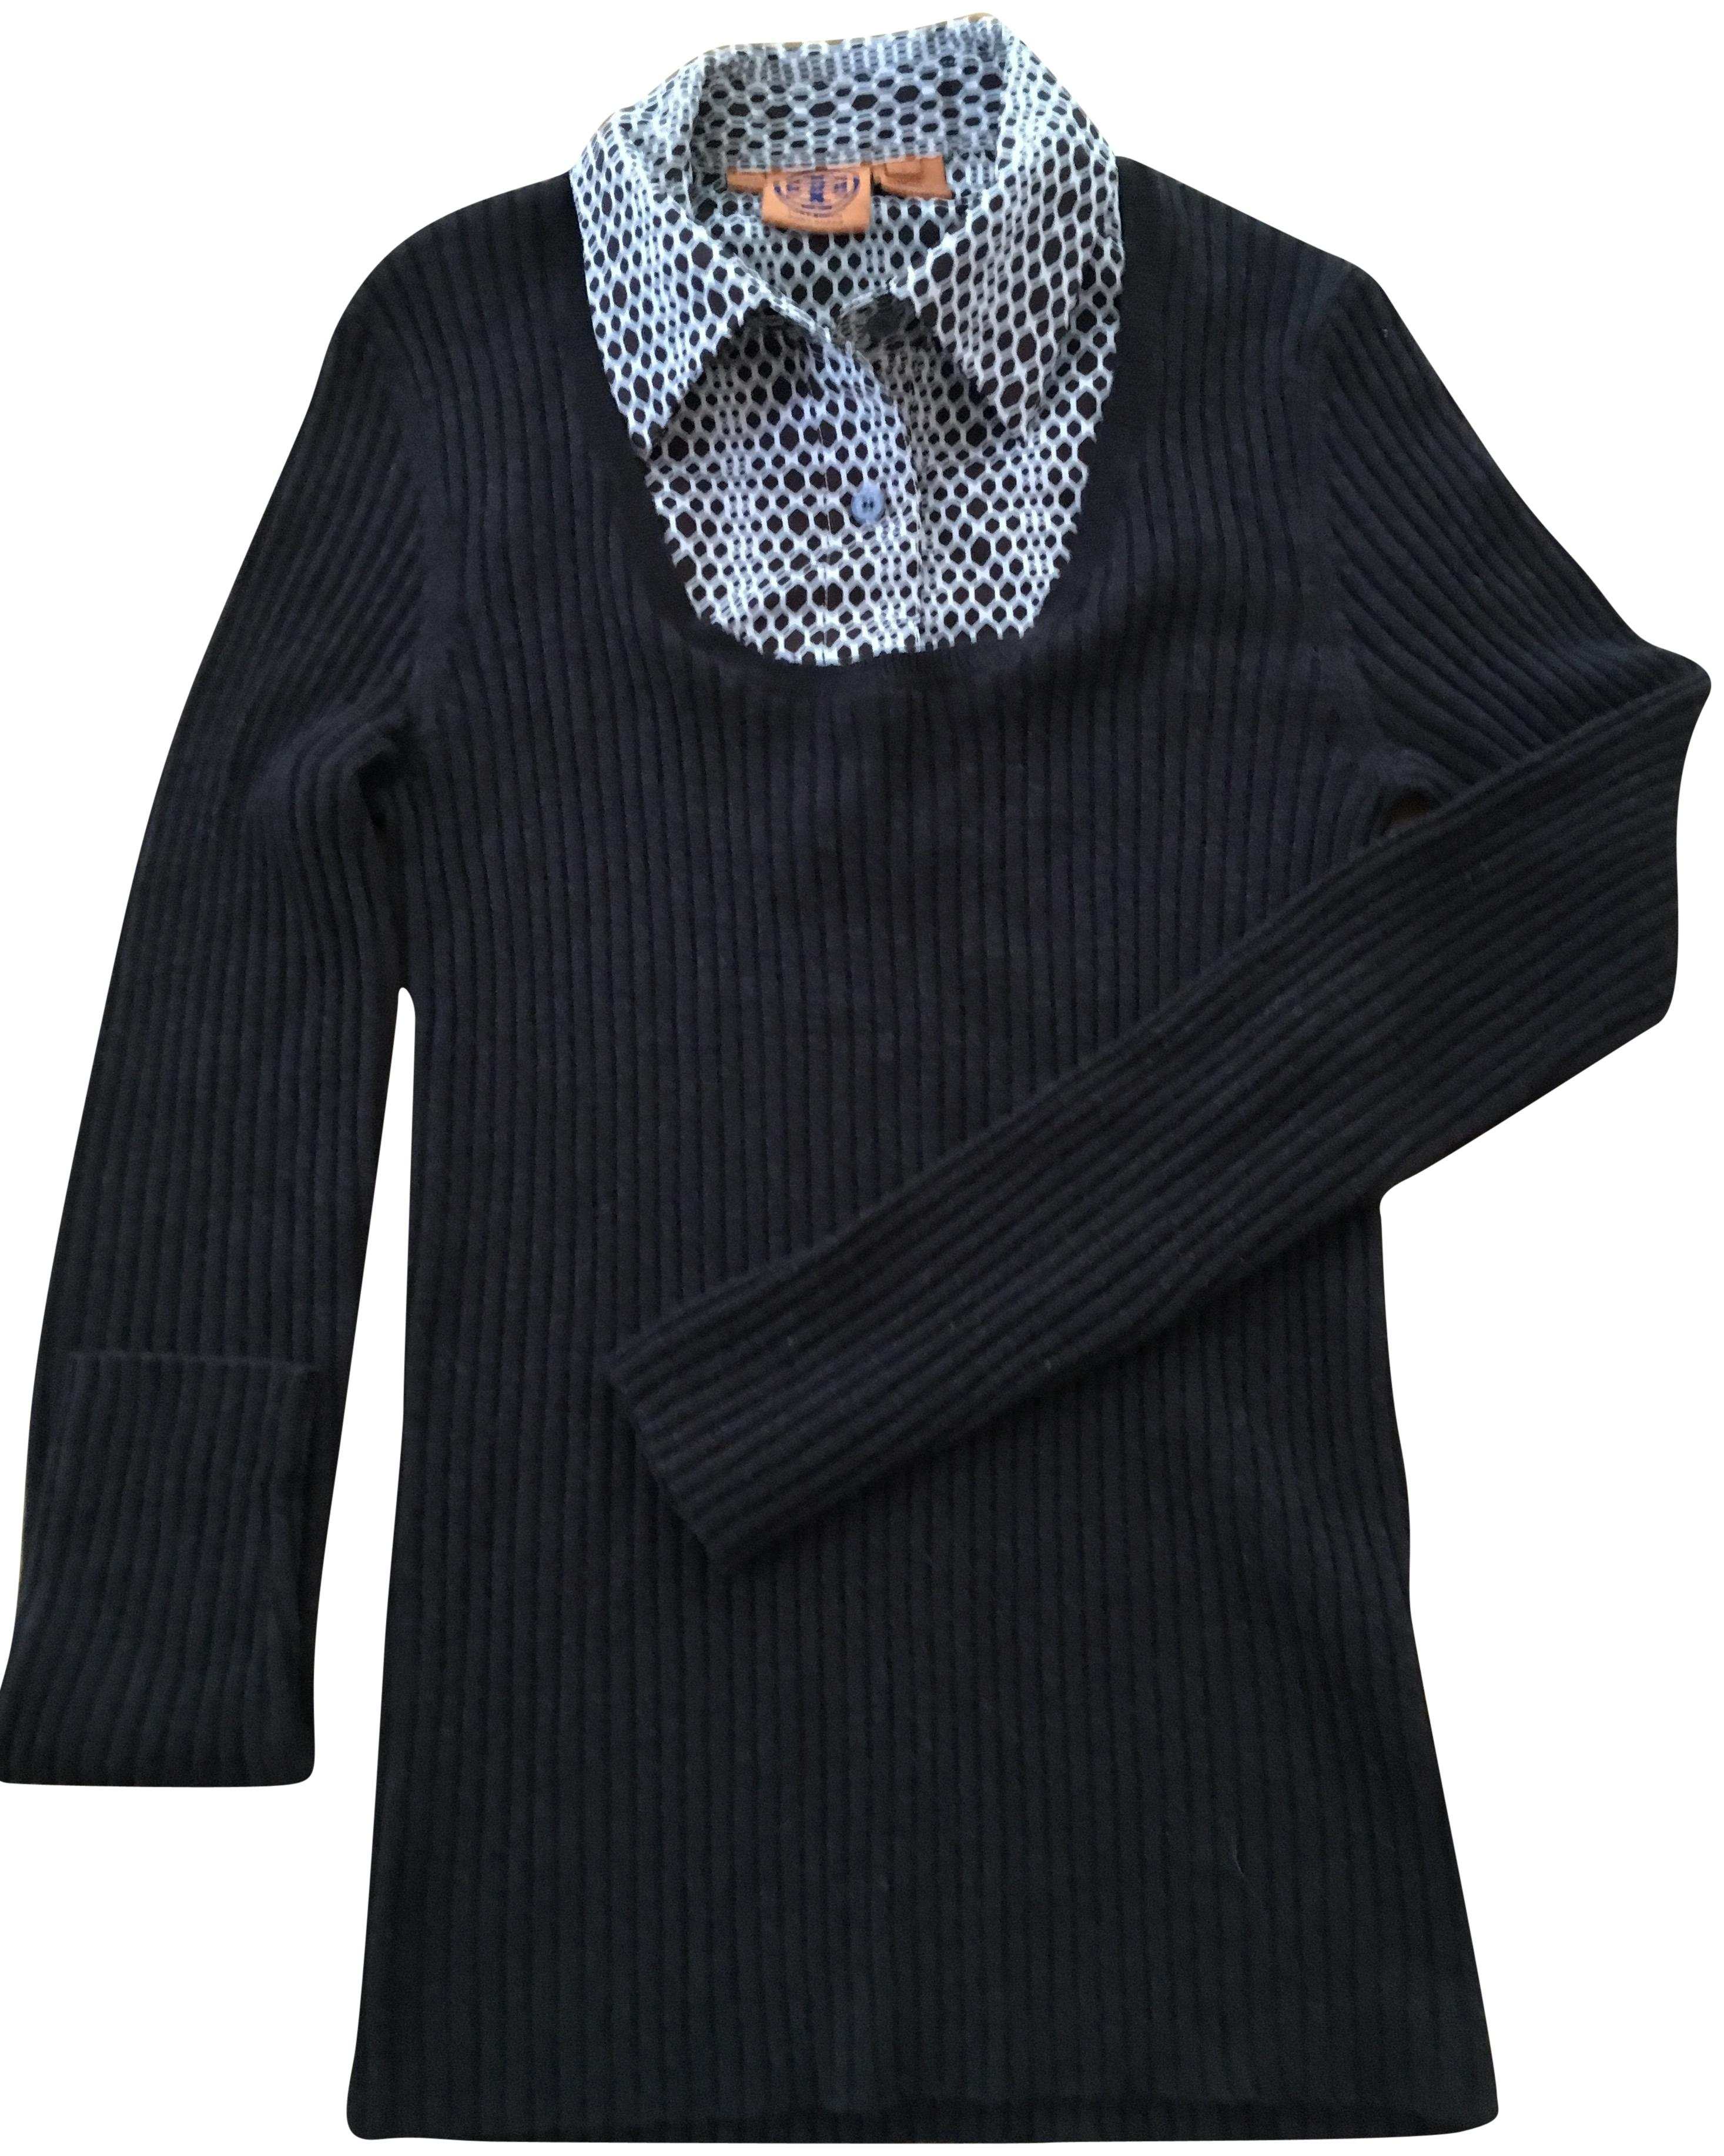 Tory Burch Brown Ribbed Knit With Geometric Design Detachable Collar